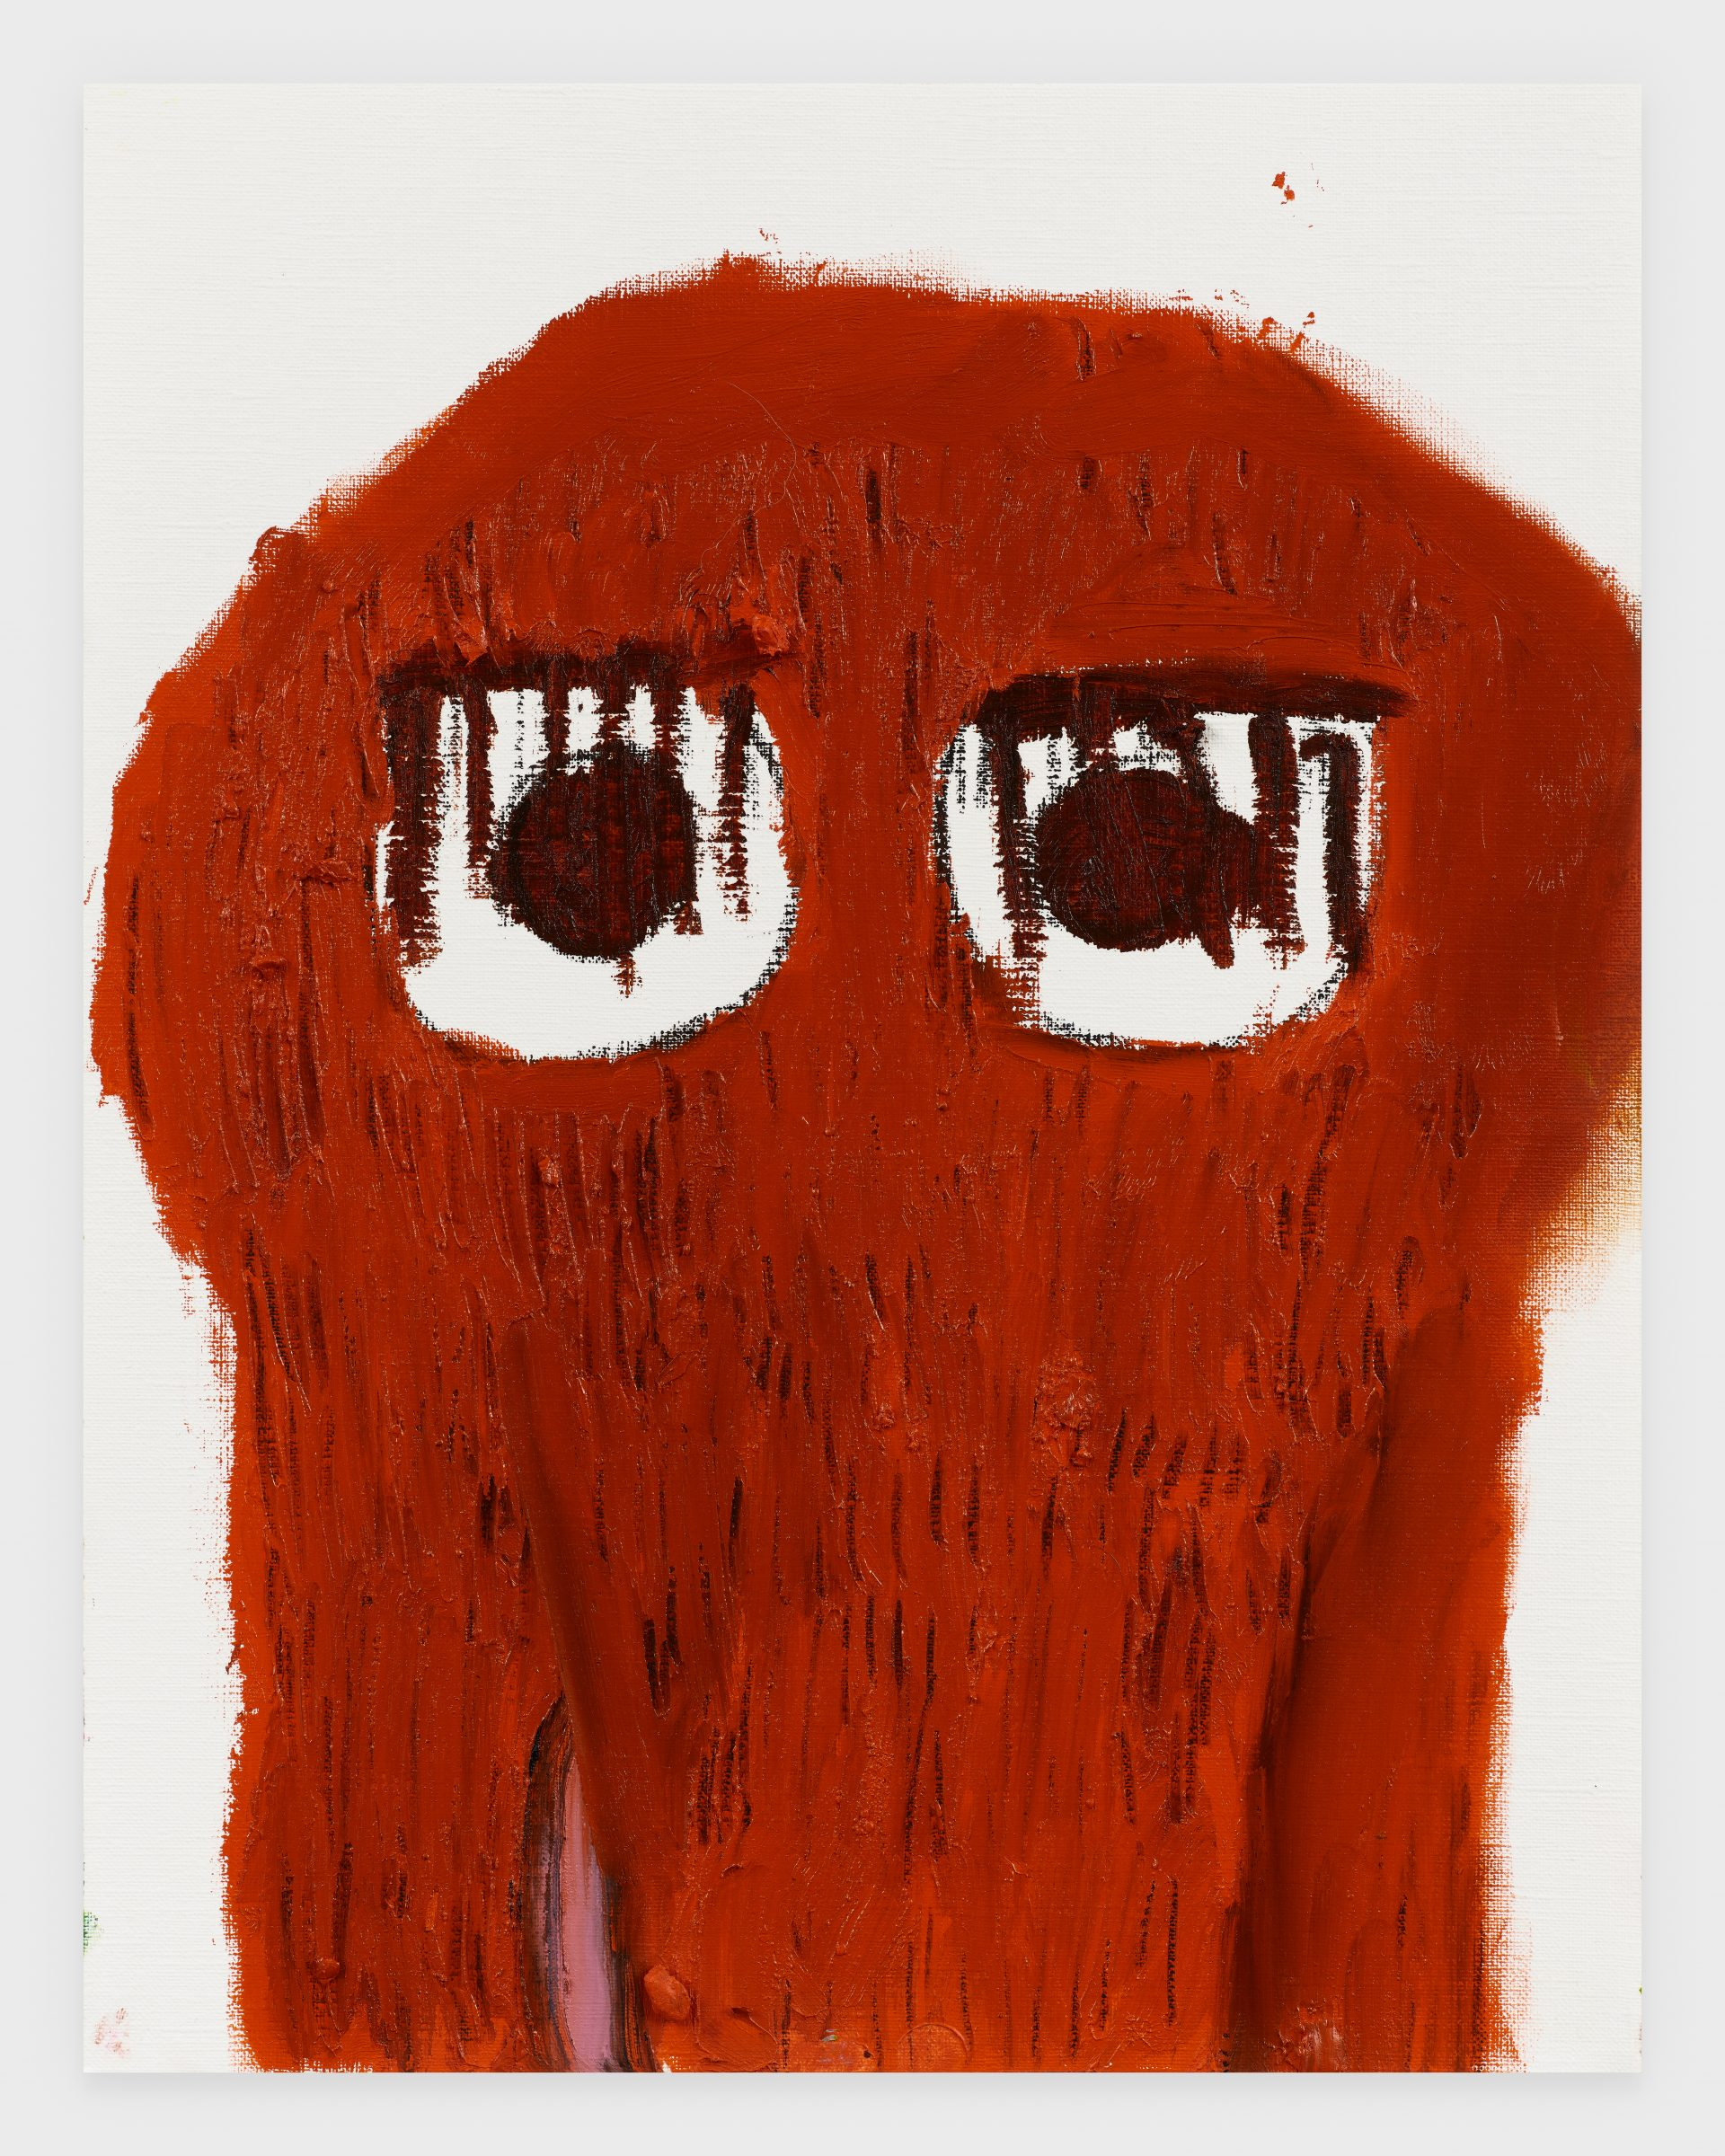 Mr. Snuffleupagus, 2020, Oil stick on archival paper, 11 x 14 inches